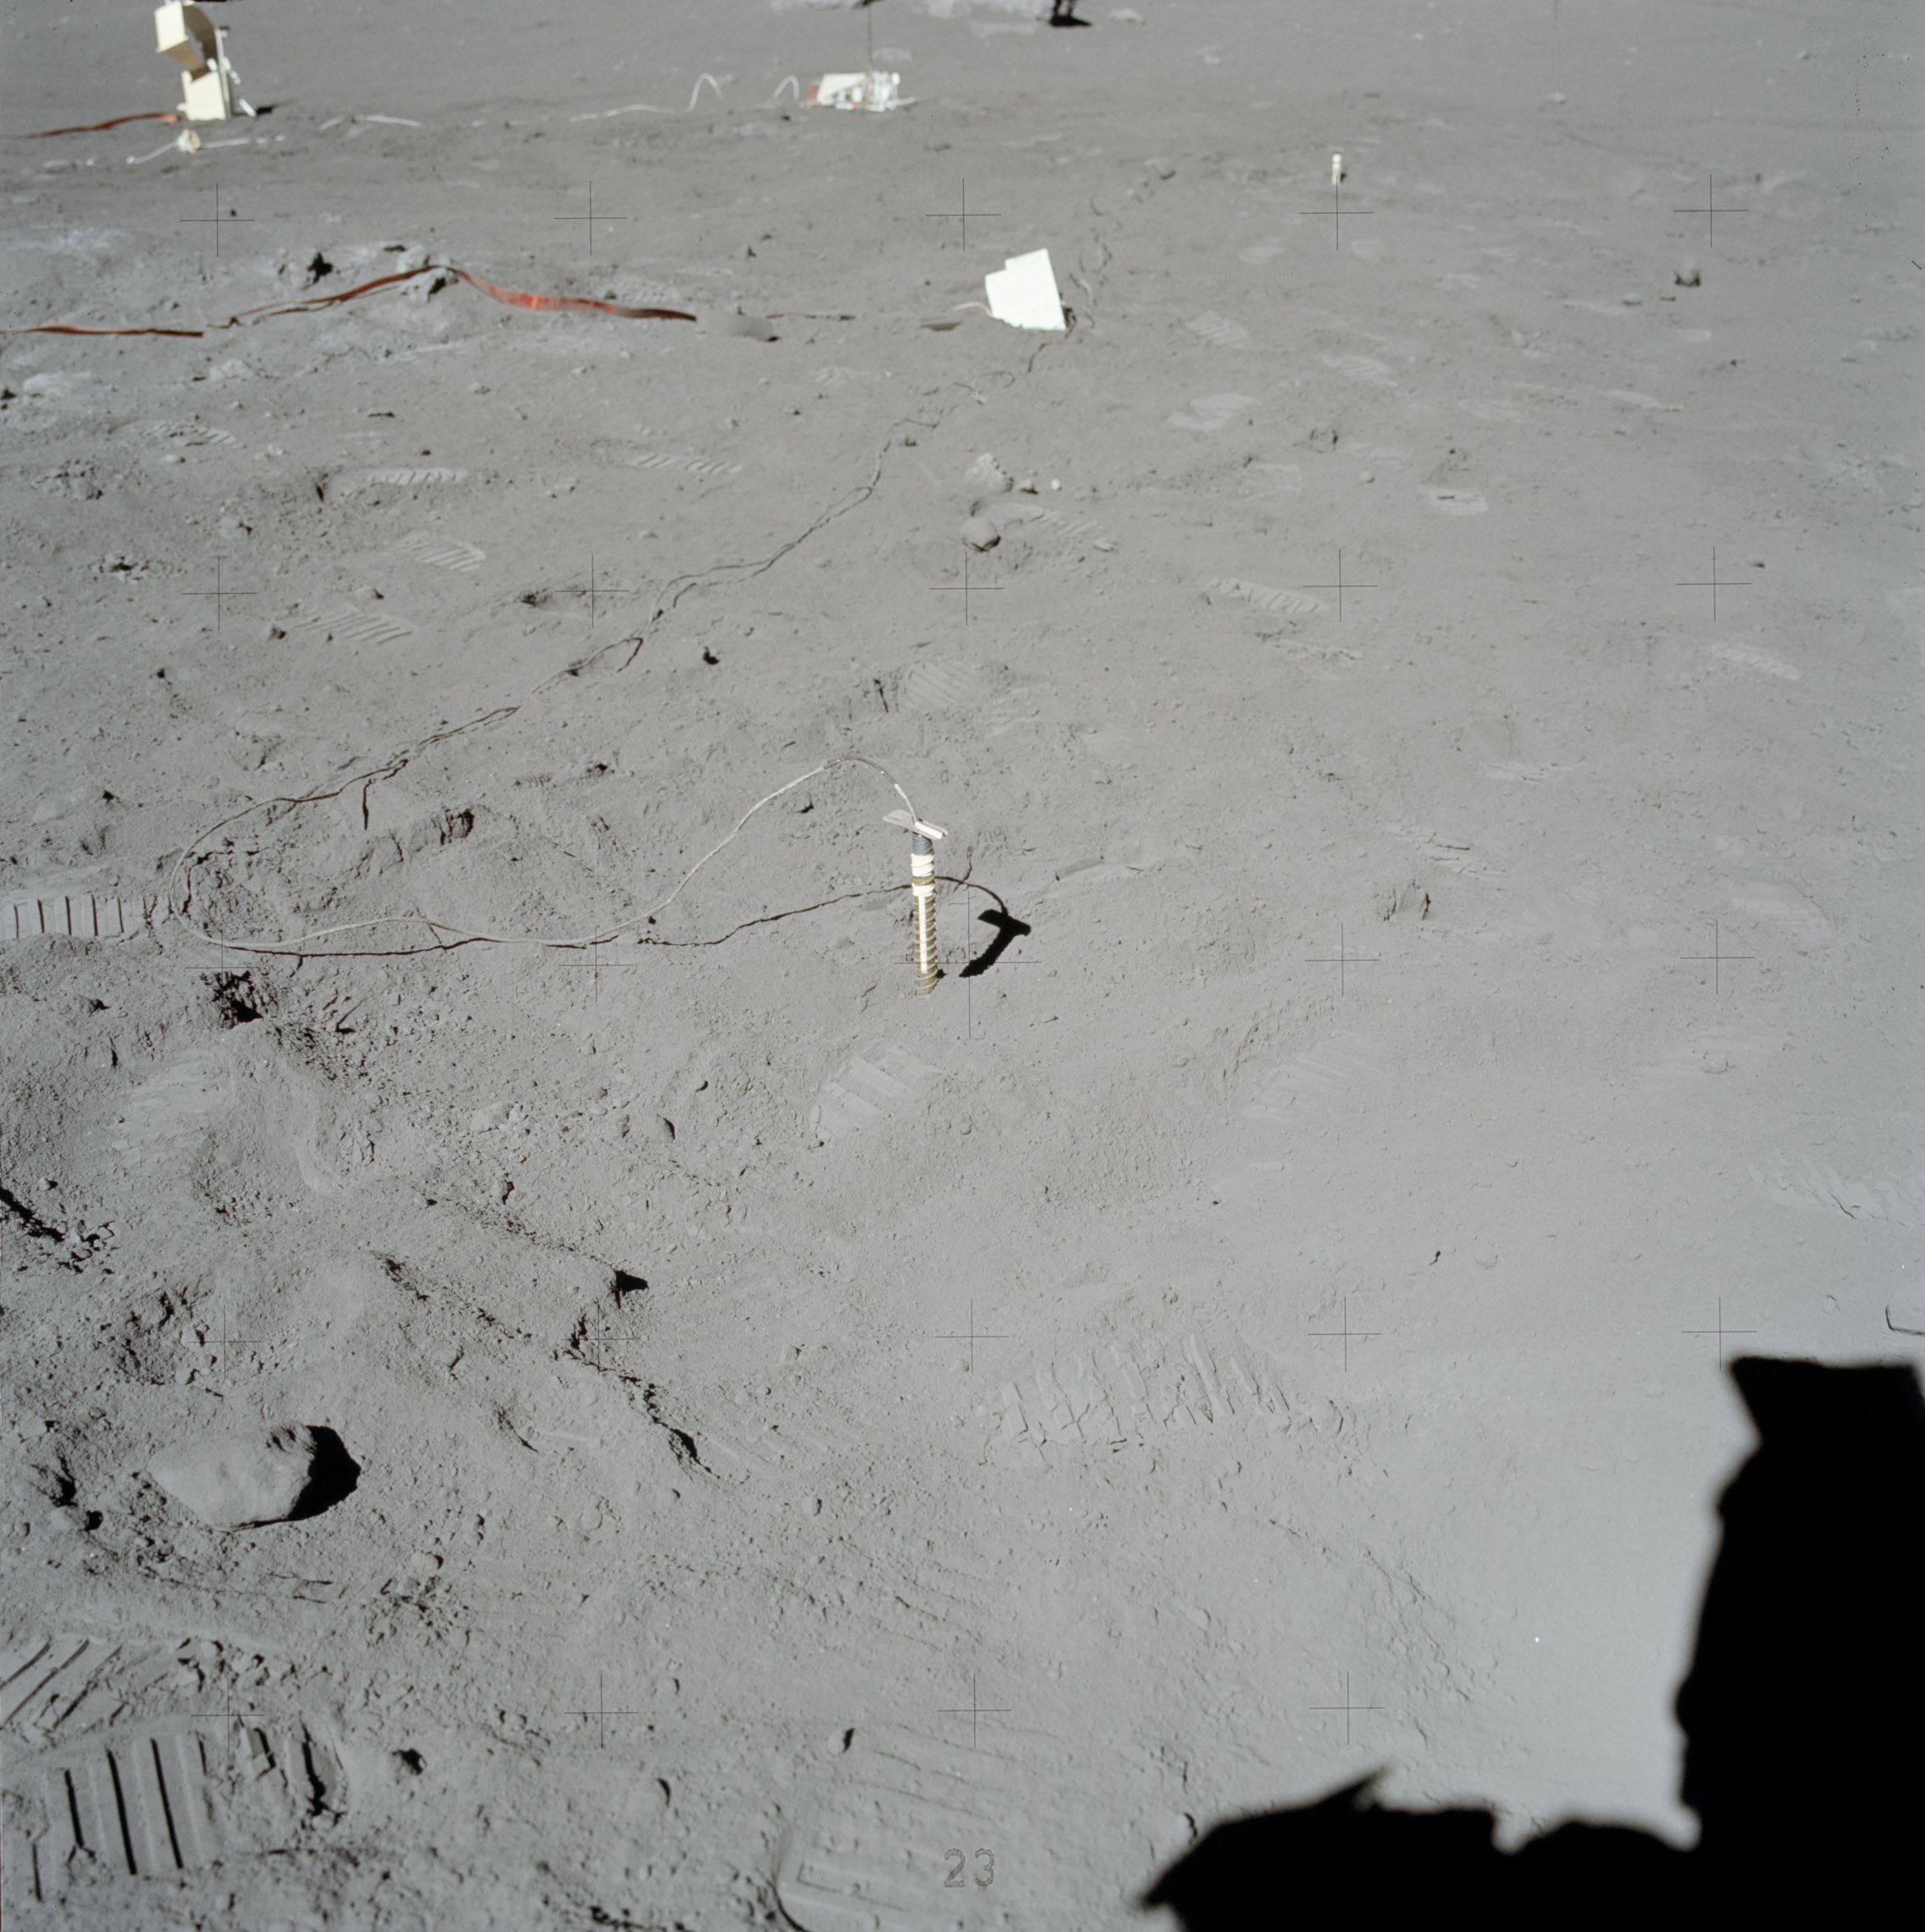 ../_images/apollo17-HFE.jpg